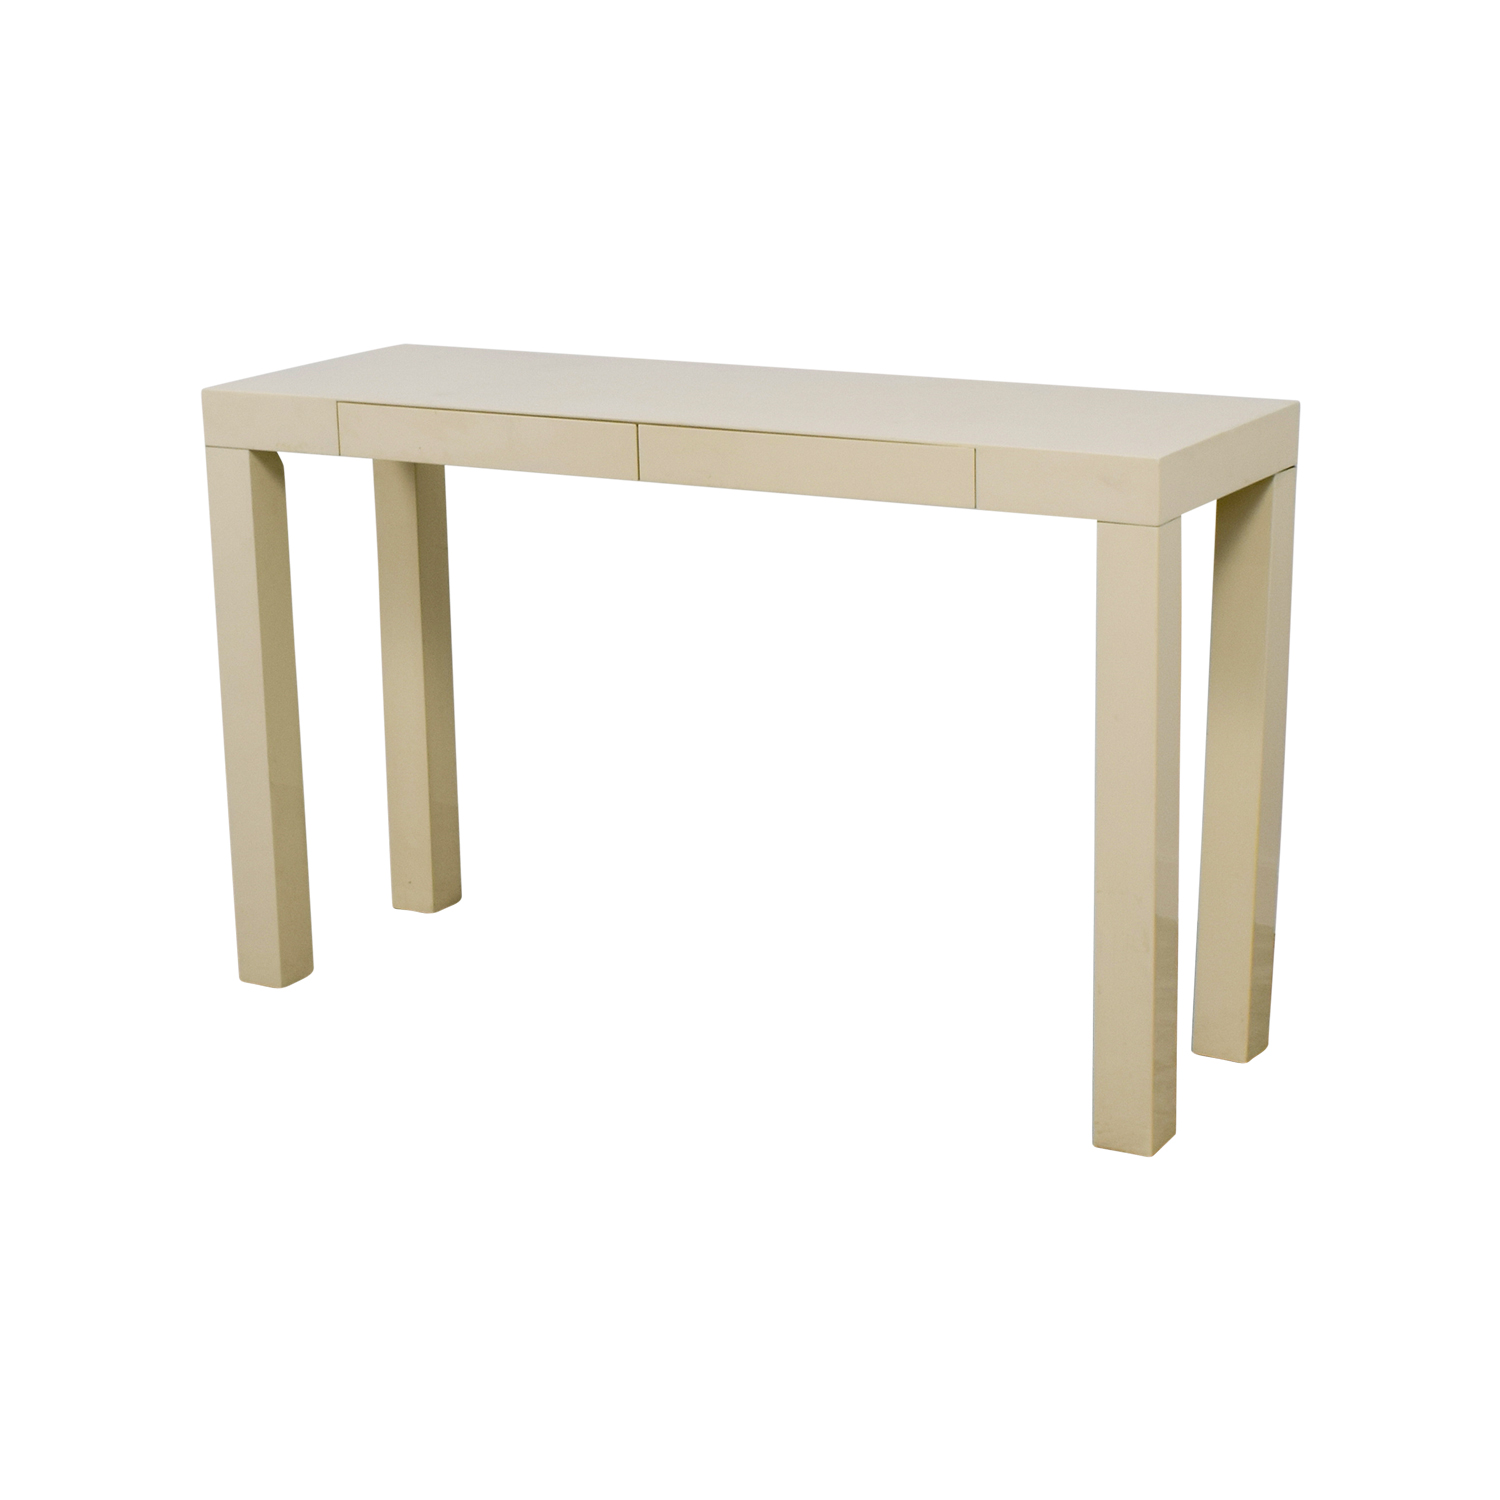 83 off west elm west elm white parsons console table tables west elm white parsons console table west elm geotapseo Image collections